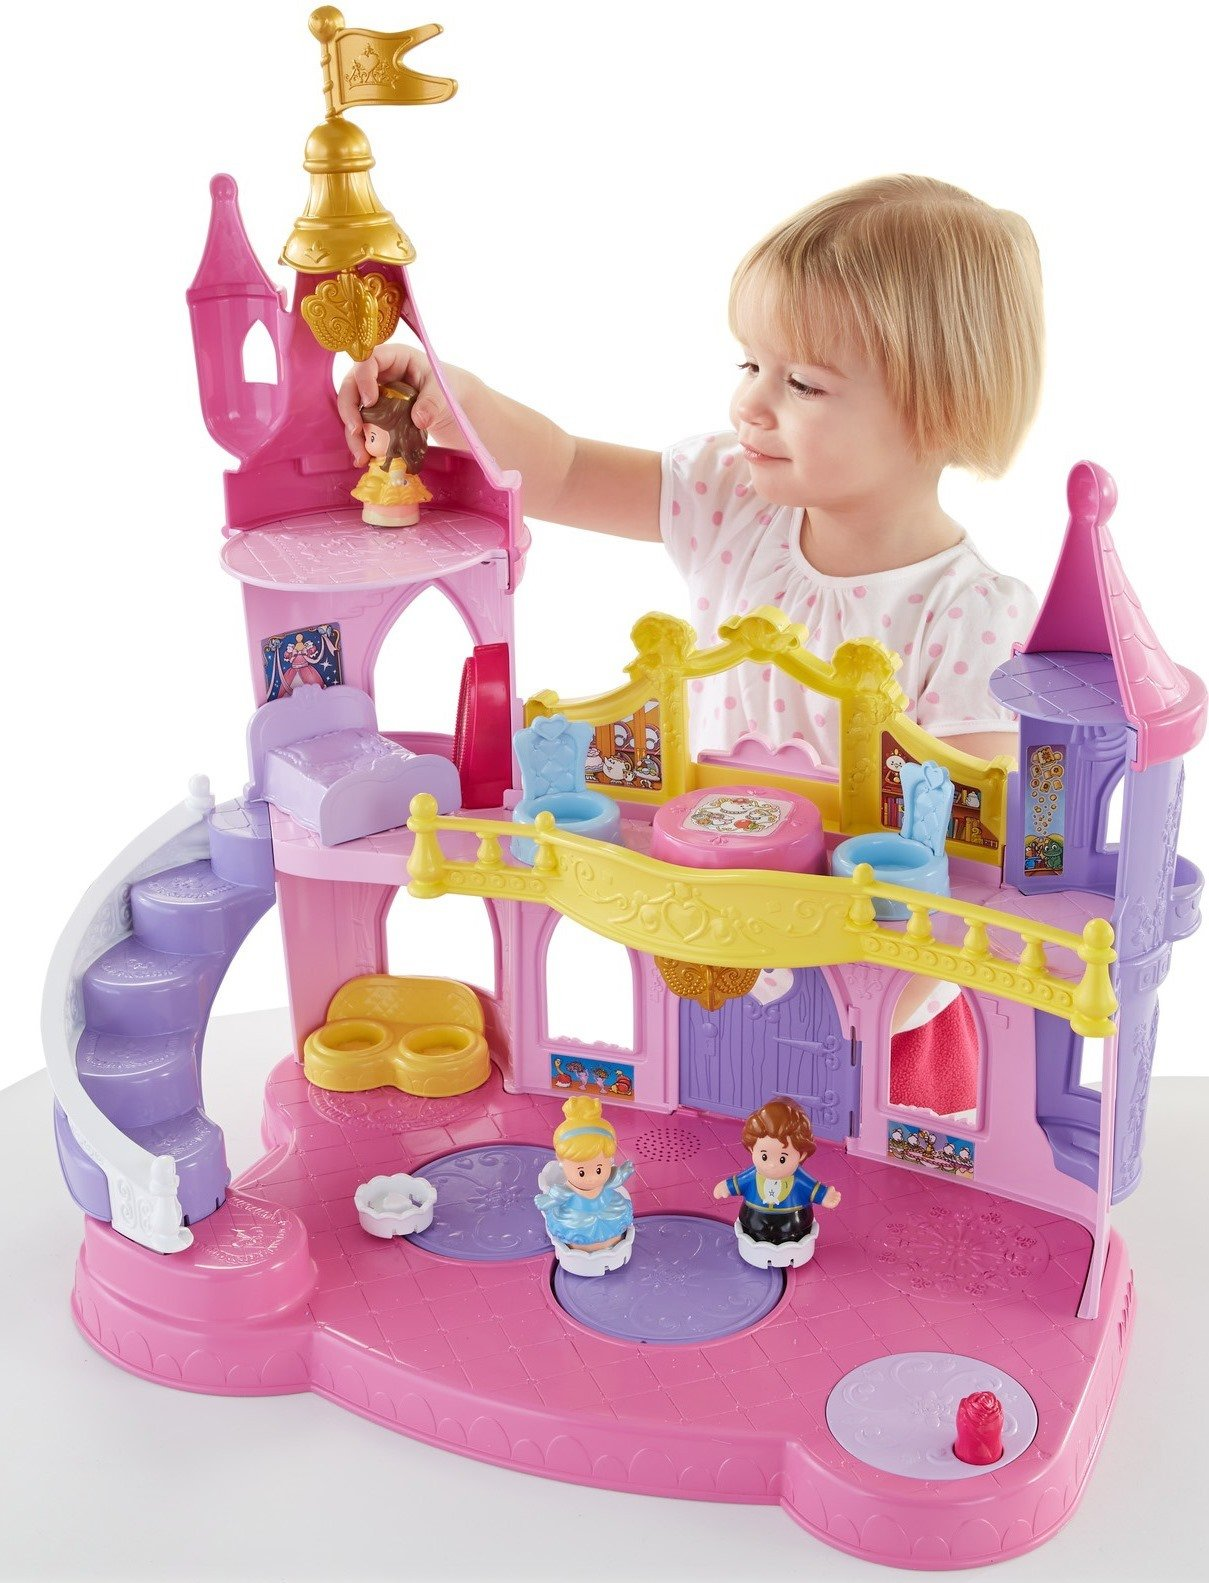 Fisher-Price Little People Disney Princess, Musical Dancing Palace by Fisher-Price (Image #2)